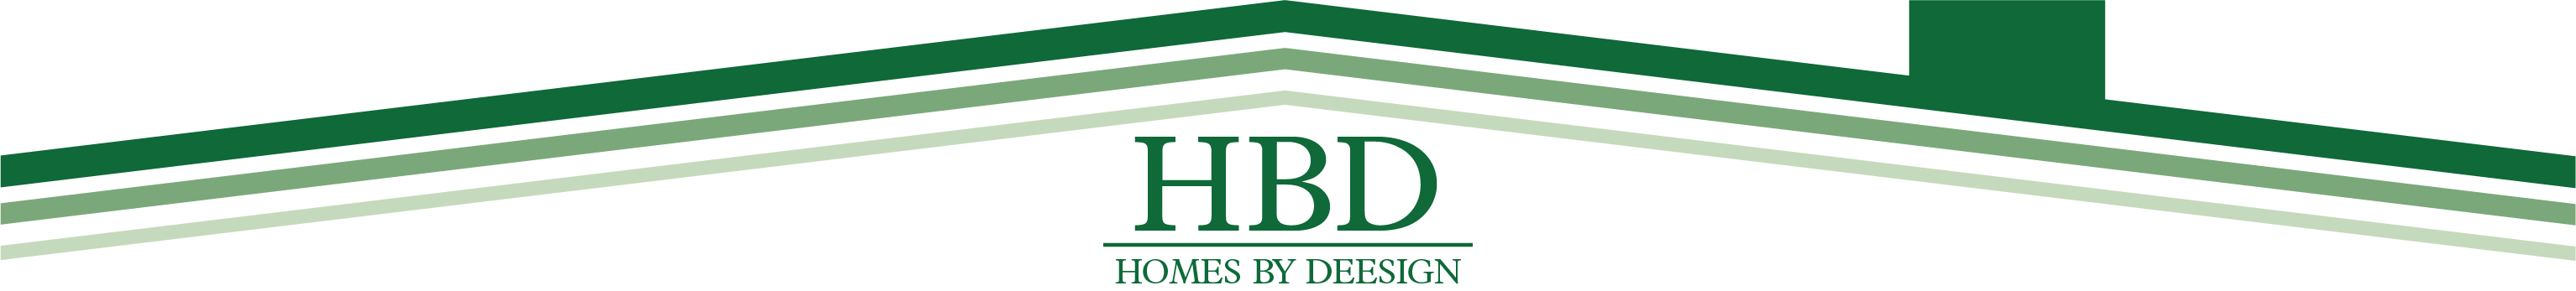 Homes by Deesign-Not Just Any Home, an HBD Home!